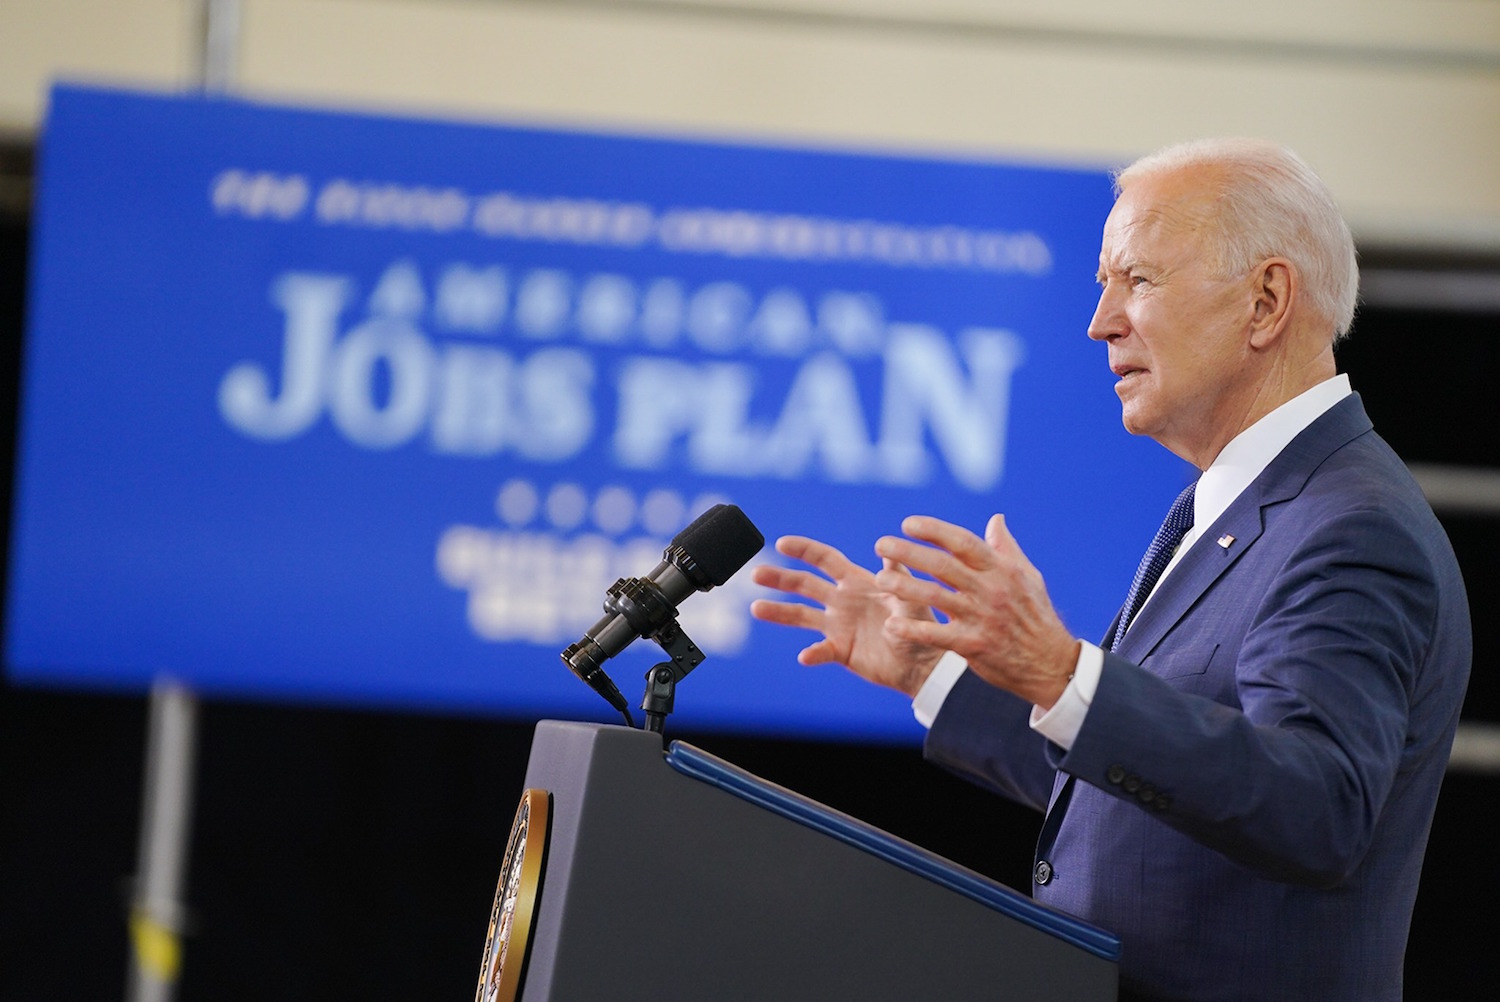 President Joe Biden has committed $174 billion towards electric vehicles and other areas related to EVs as part of the American Jobs Plan.